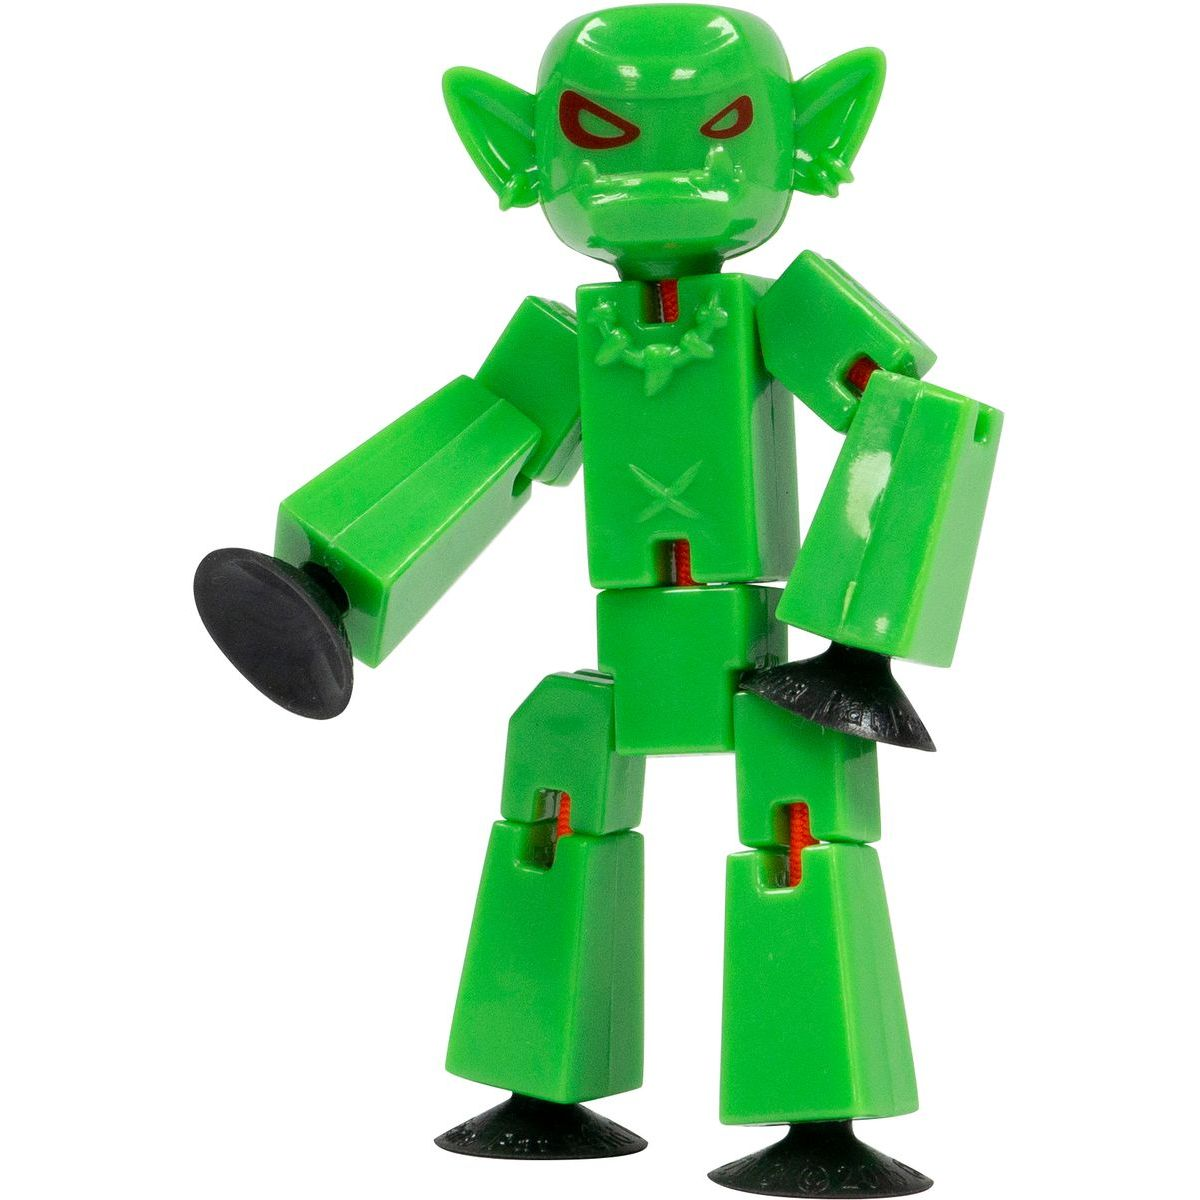 Stikbot Monsters Goblin